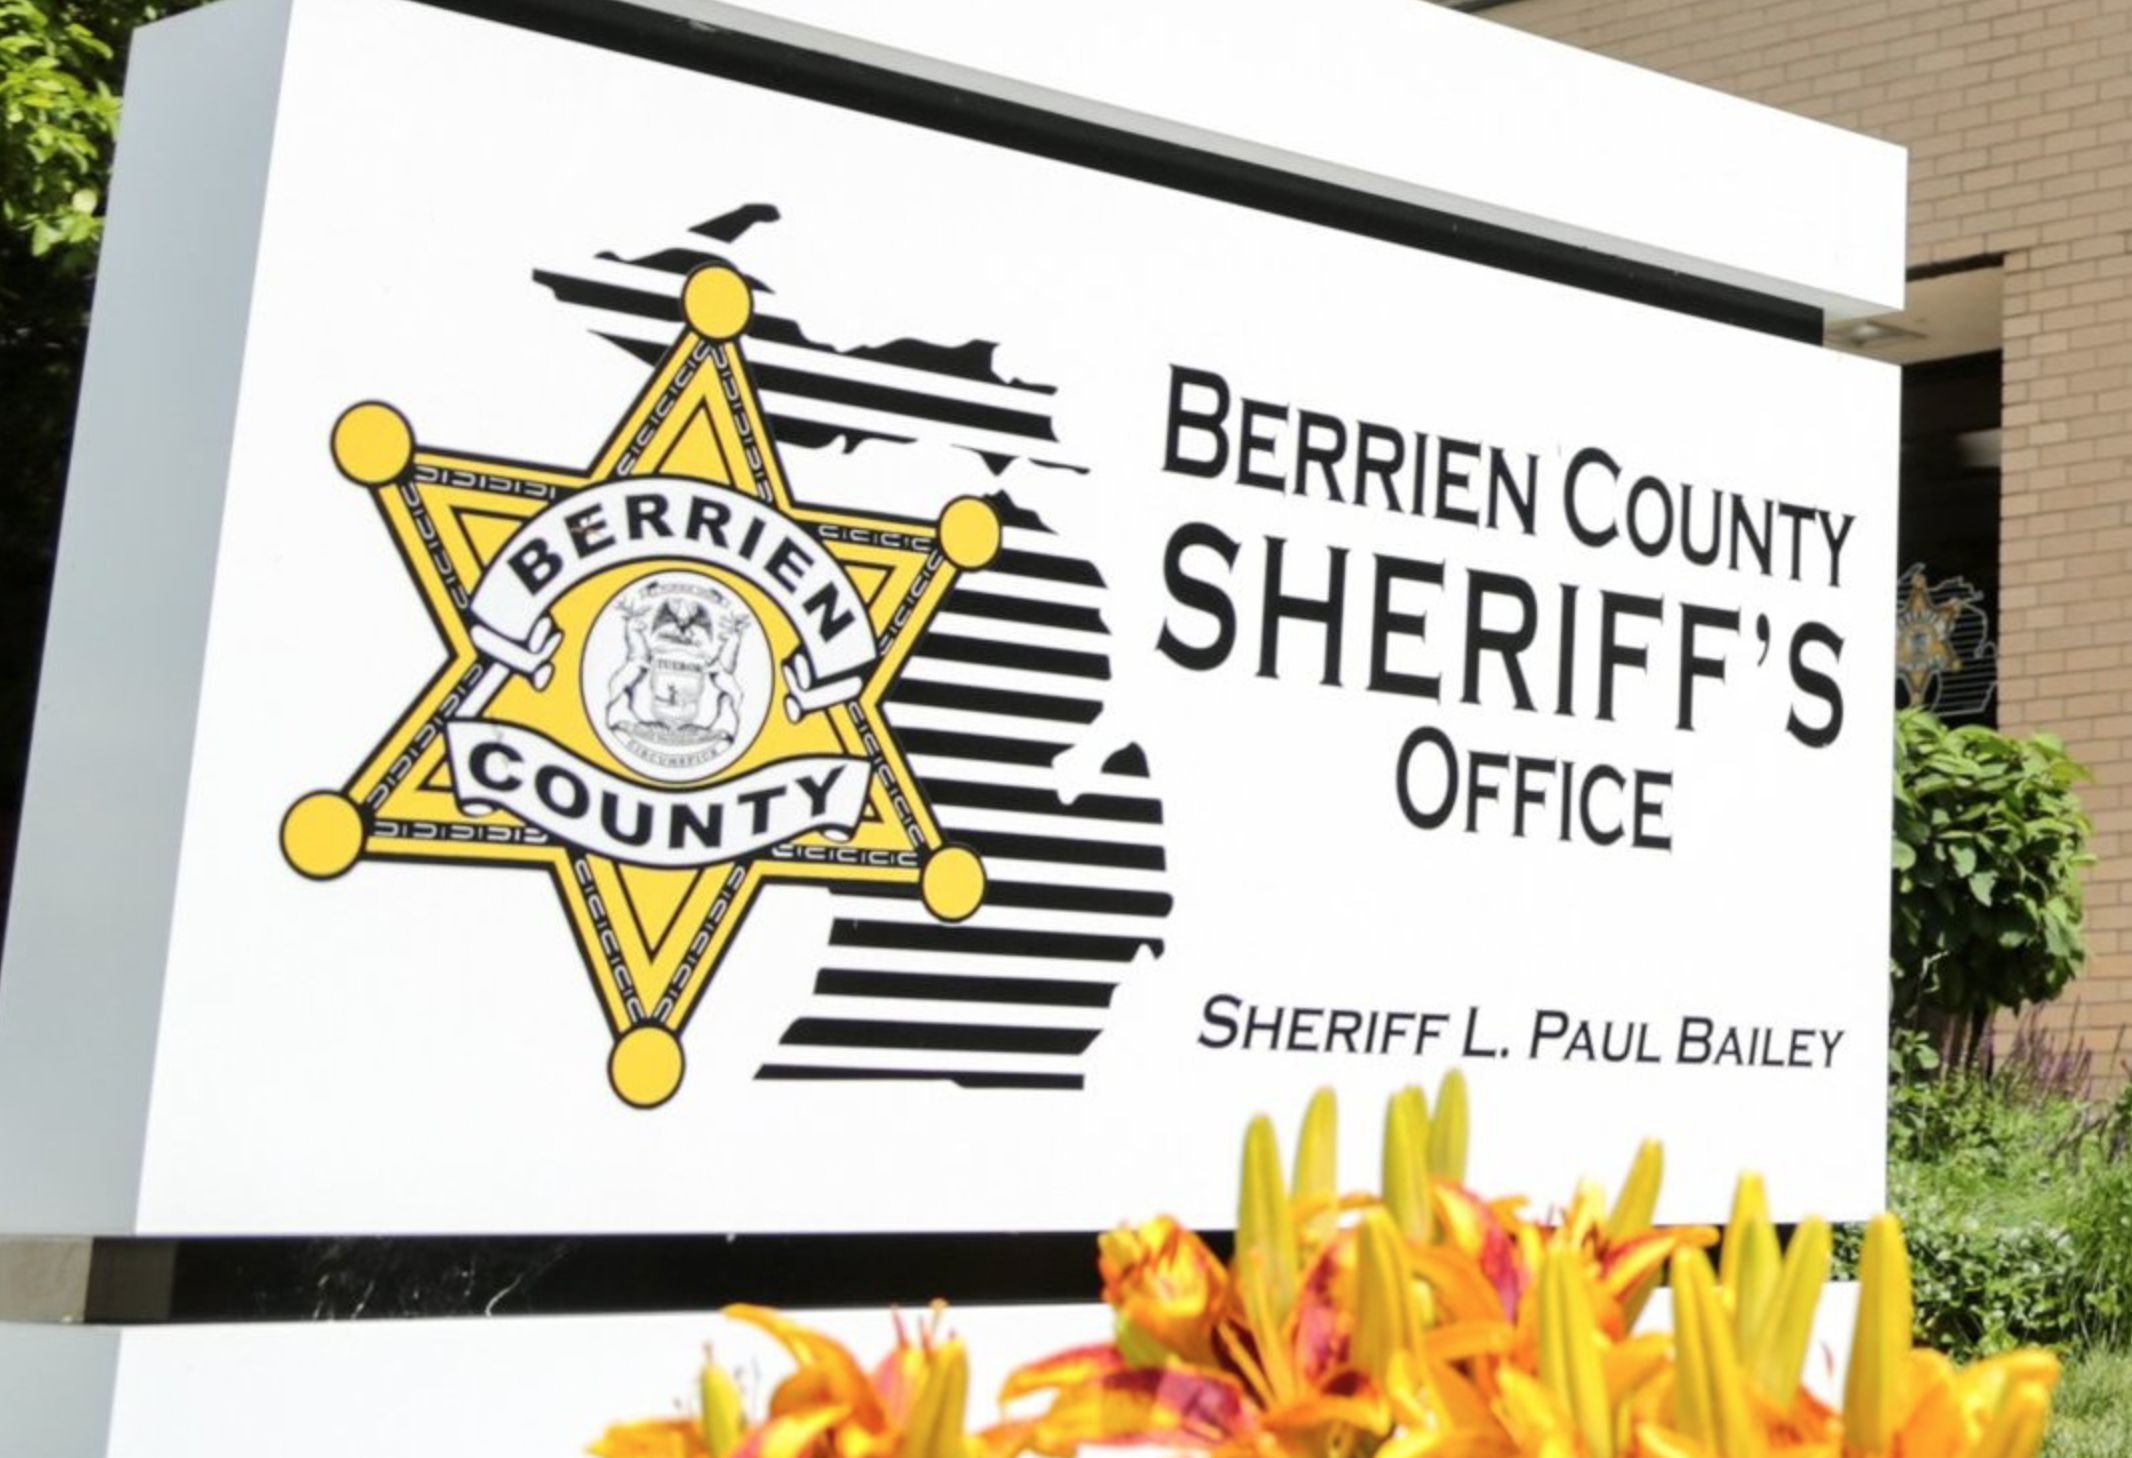 Sign depicting Sheriff's office location.